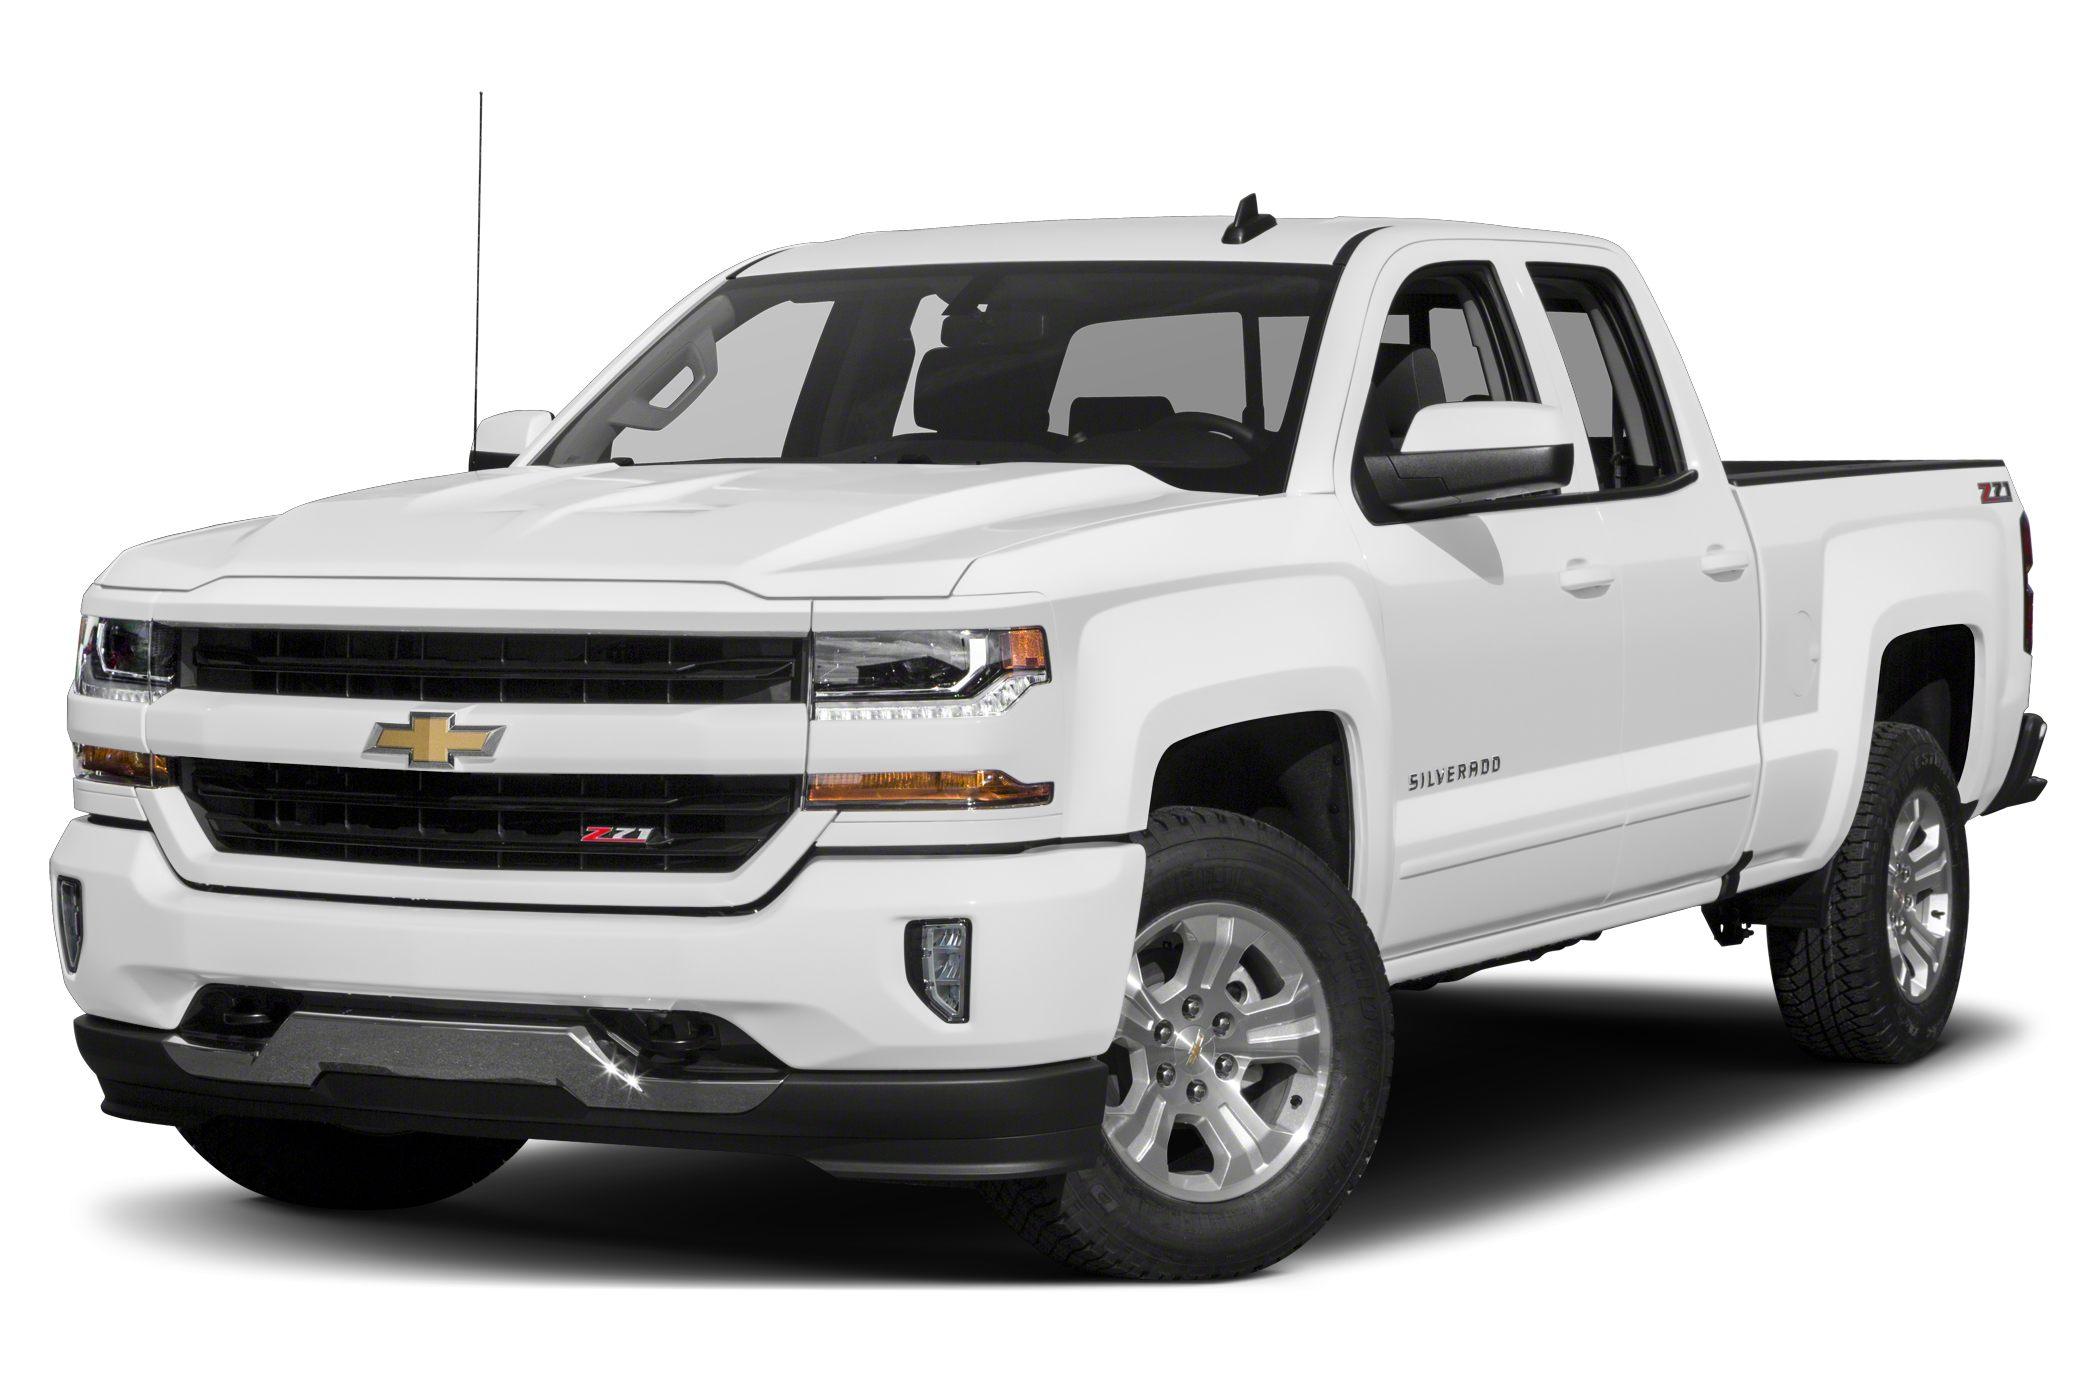 2019 Chevrolet Silverado 1500 LD LT w/2LT 4x4 Double Cab 6.6 ft. box 143.5 in. WB